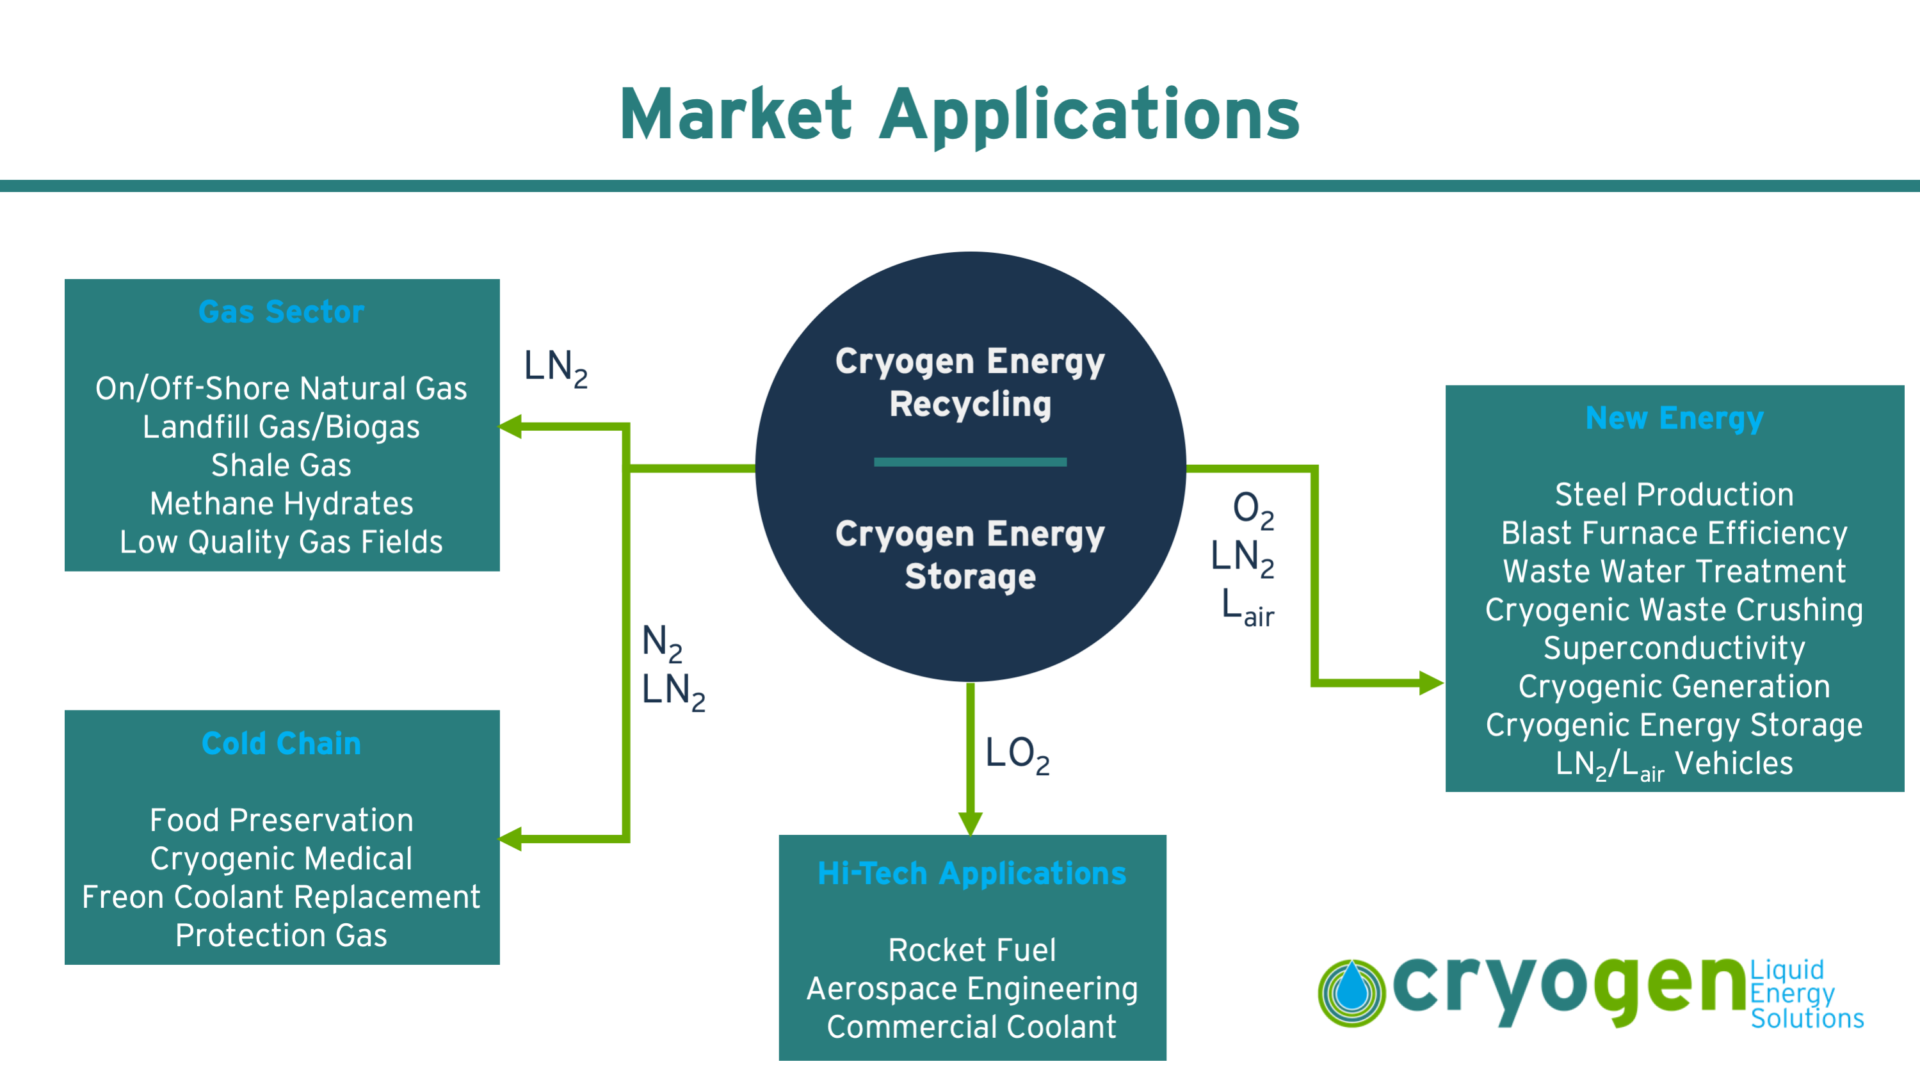 Cryogen Applications Diagram